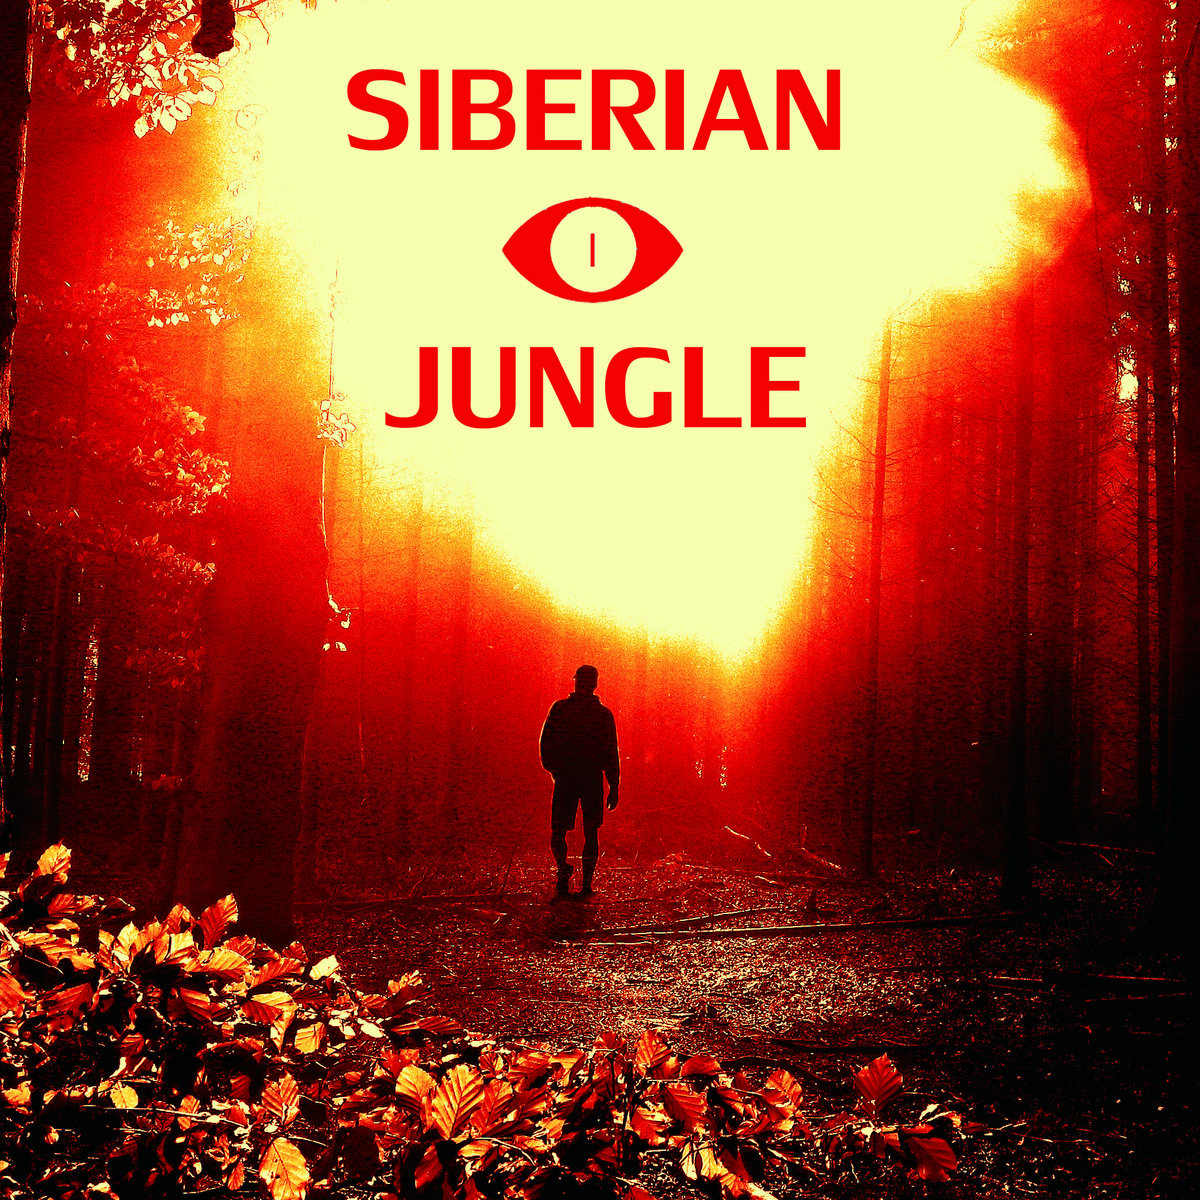 Siberian Jungle - Volume 1